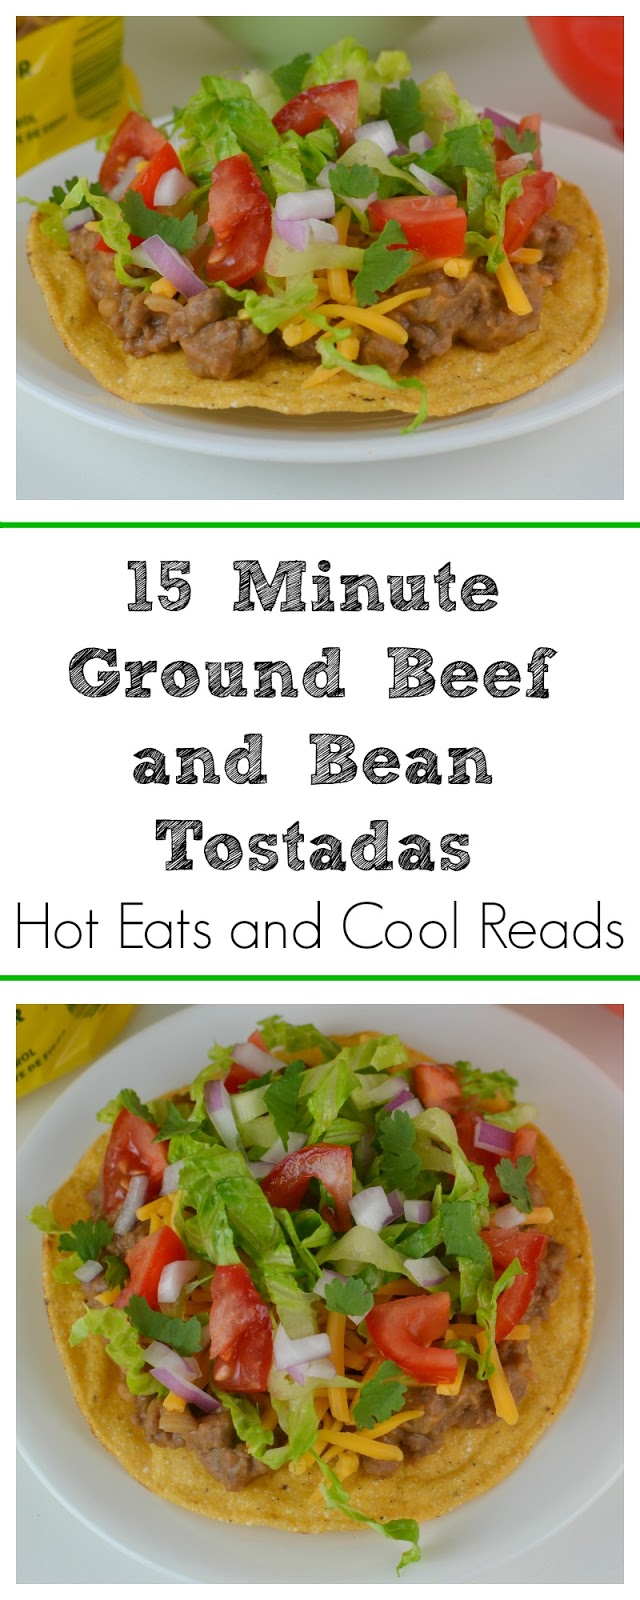 Hot eats and cool reads 15 minute ground beef and bean tostadas recipe one of the fastest weeknight meals you can make and absolutely delicious 15 minute ground forumfinder Choice Image